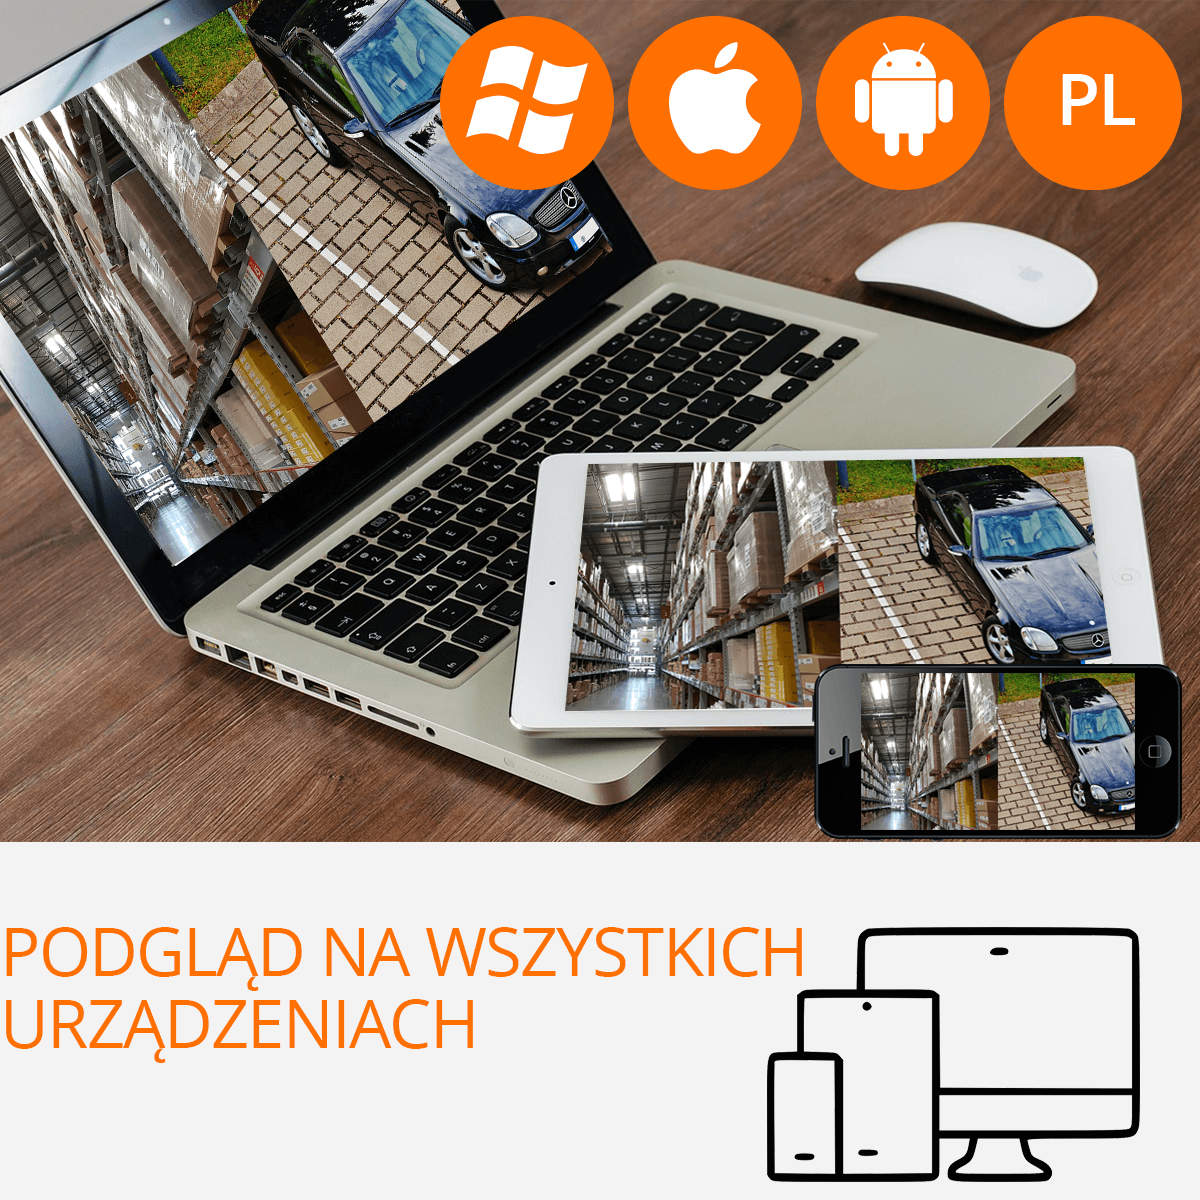 Zestaw-do-monitoringu-CAMSET-system-monitoringu-orllo-pl